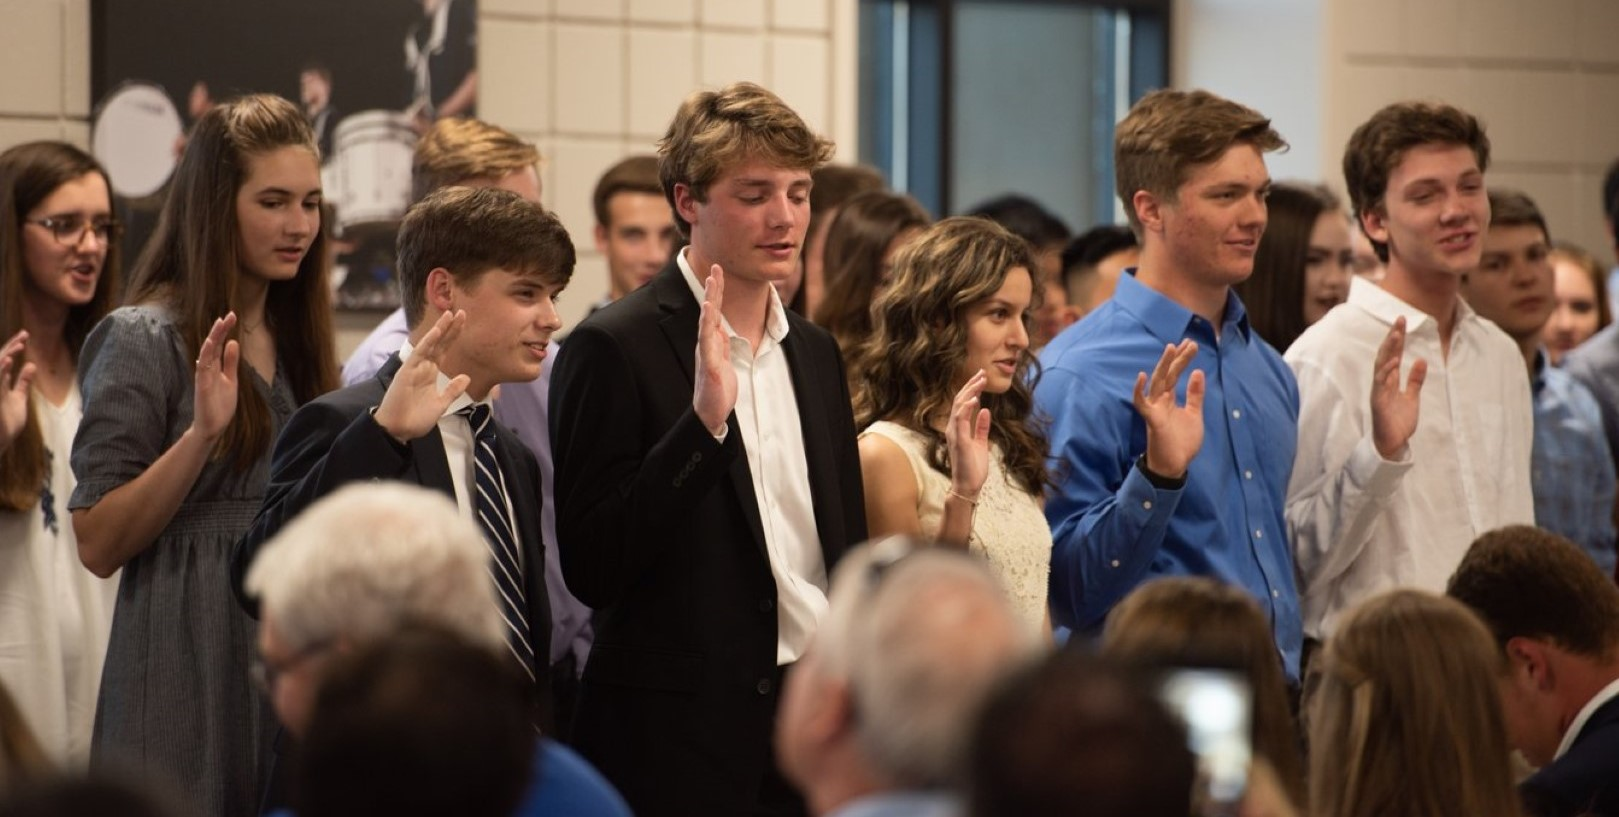 2019 NHS Induction Ceremony